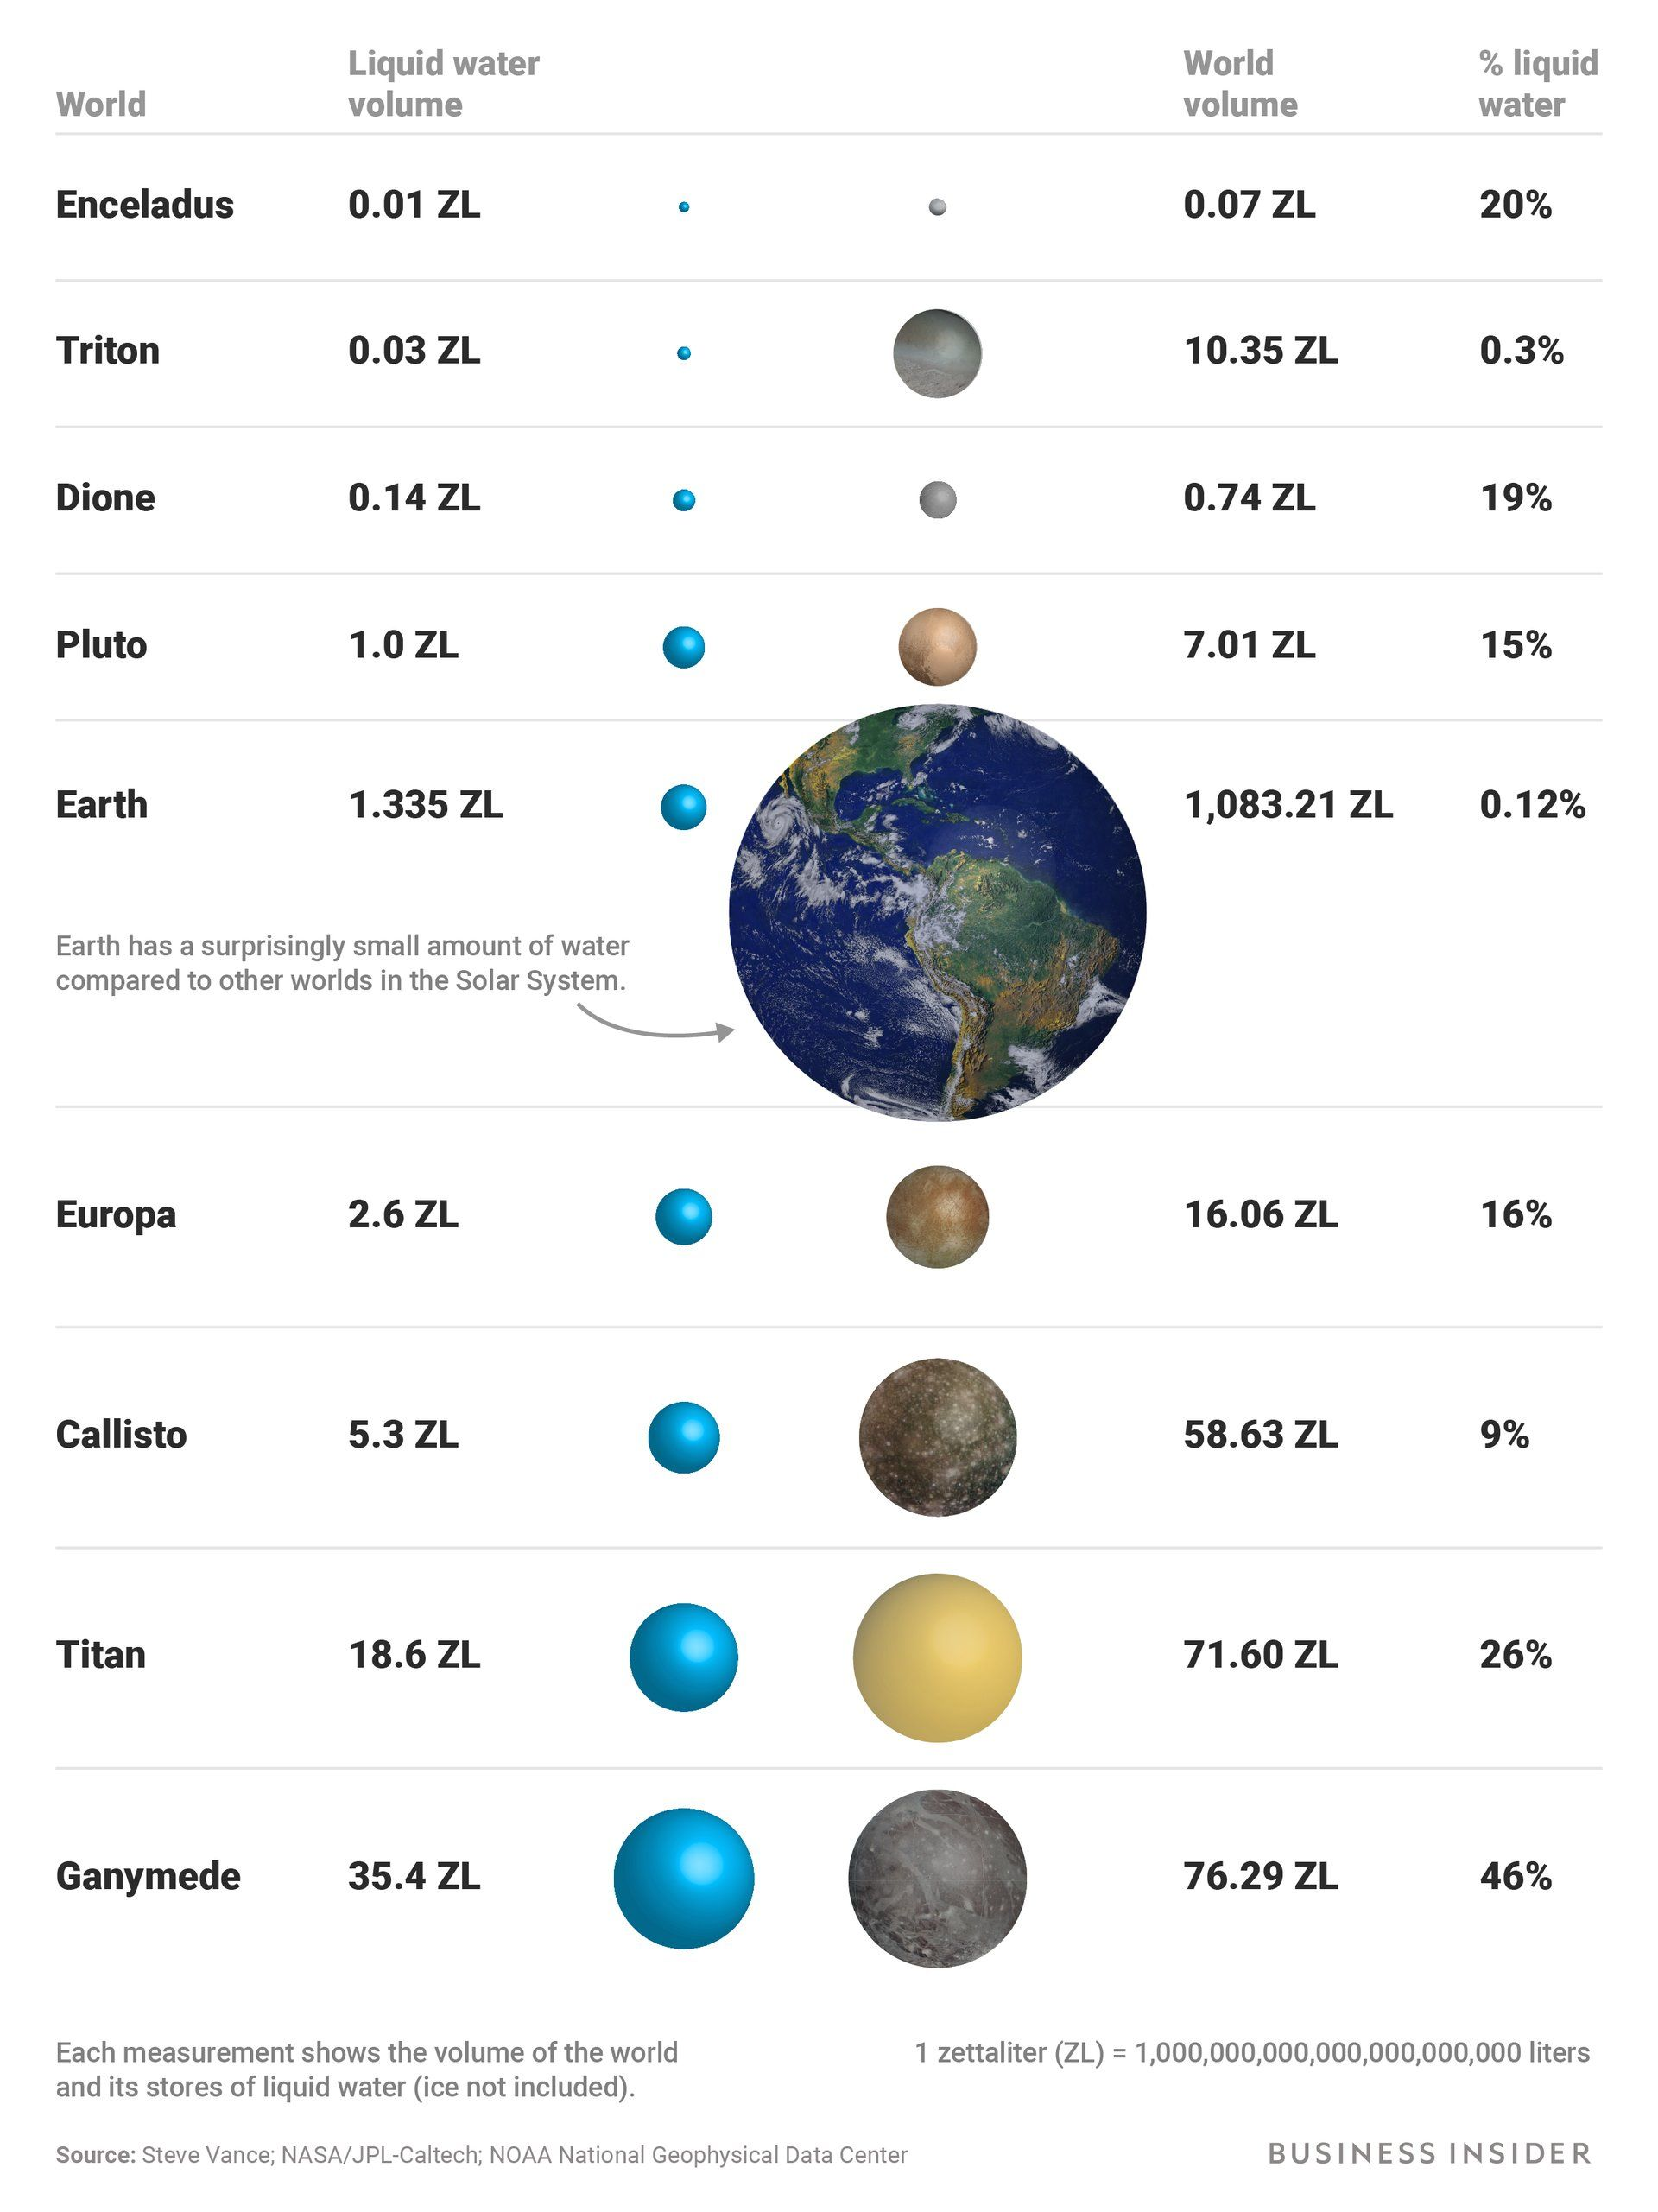 Earth Is A Desert Planet Compared To These Ocean Worlds In